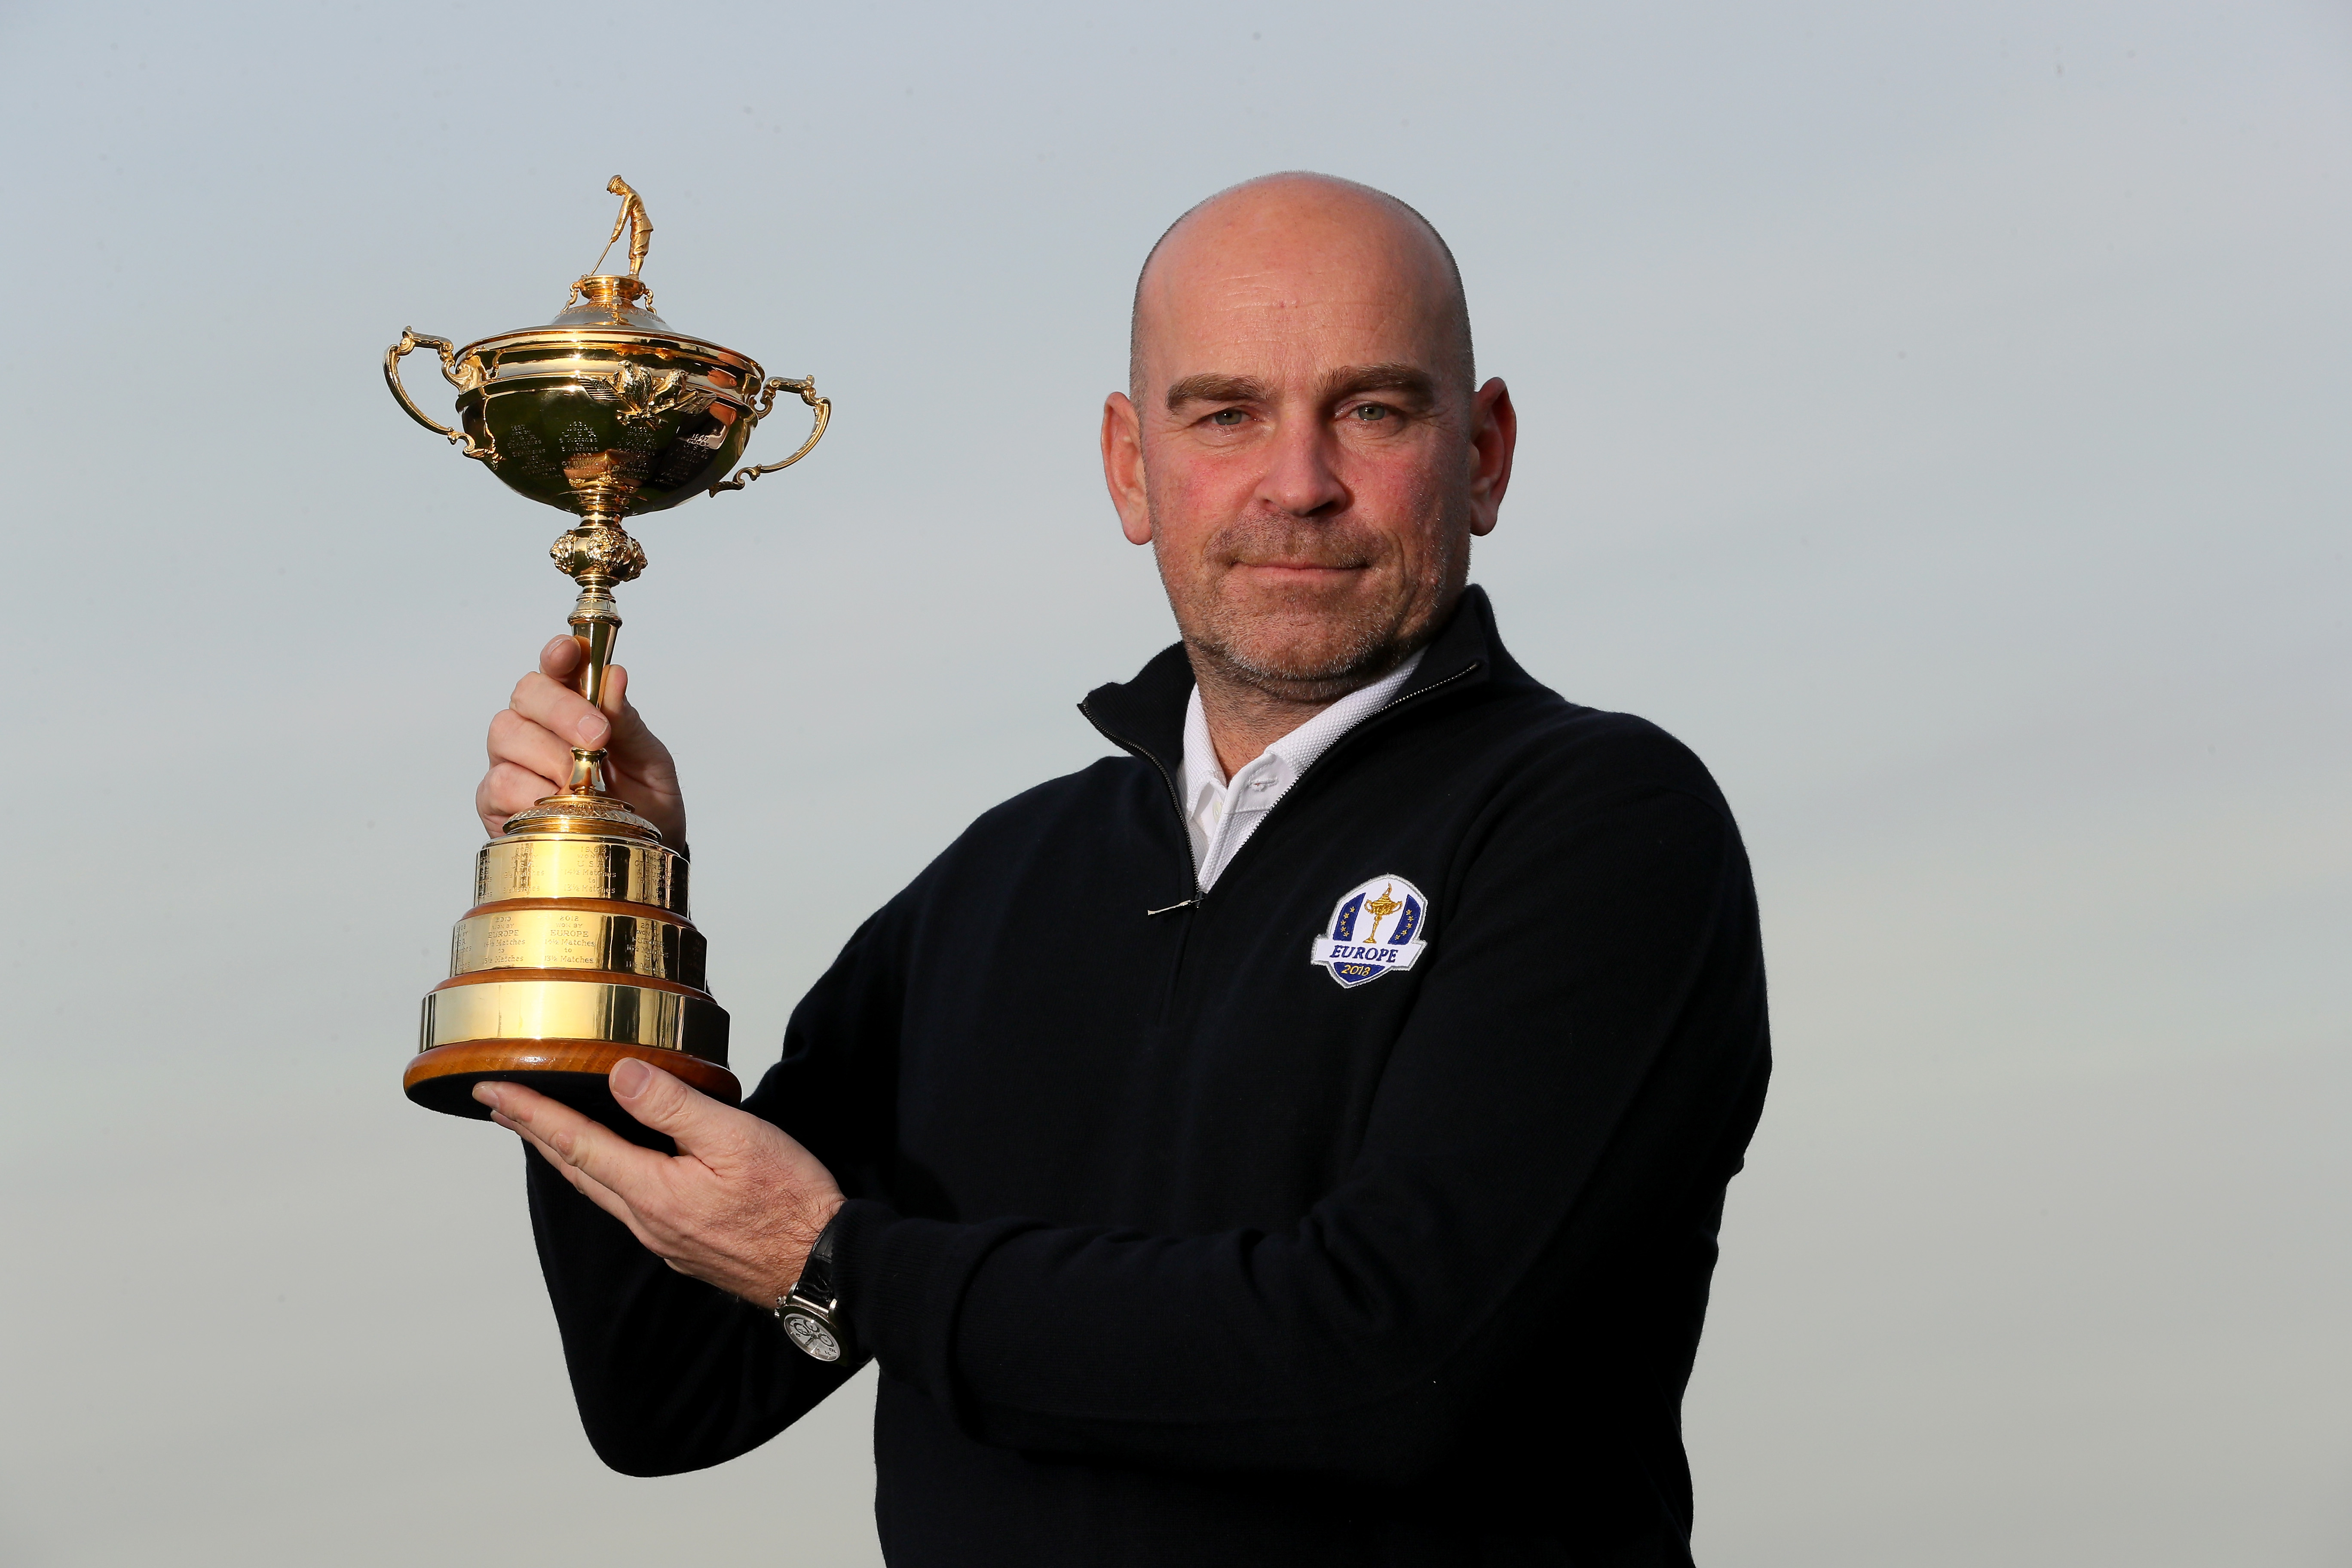 Thomas Bjorn to captain Europe at Ryder Cup in 2018